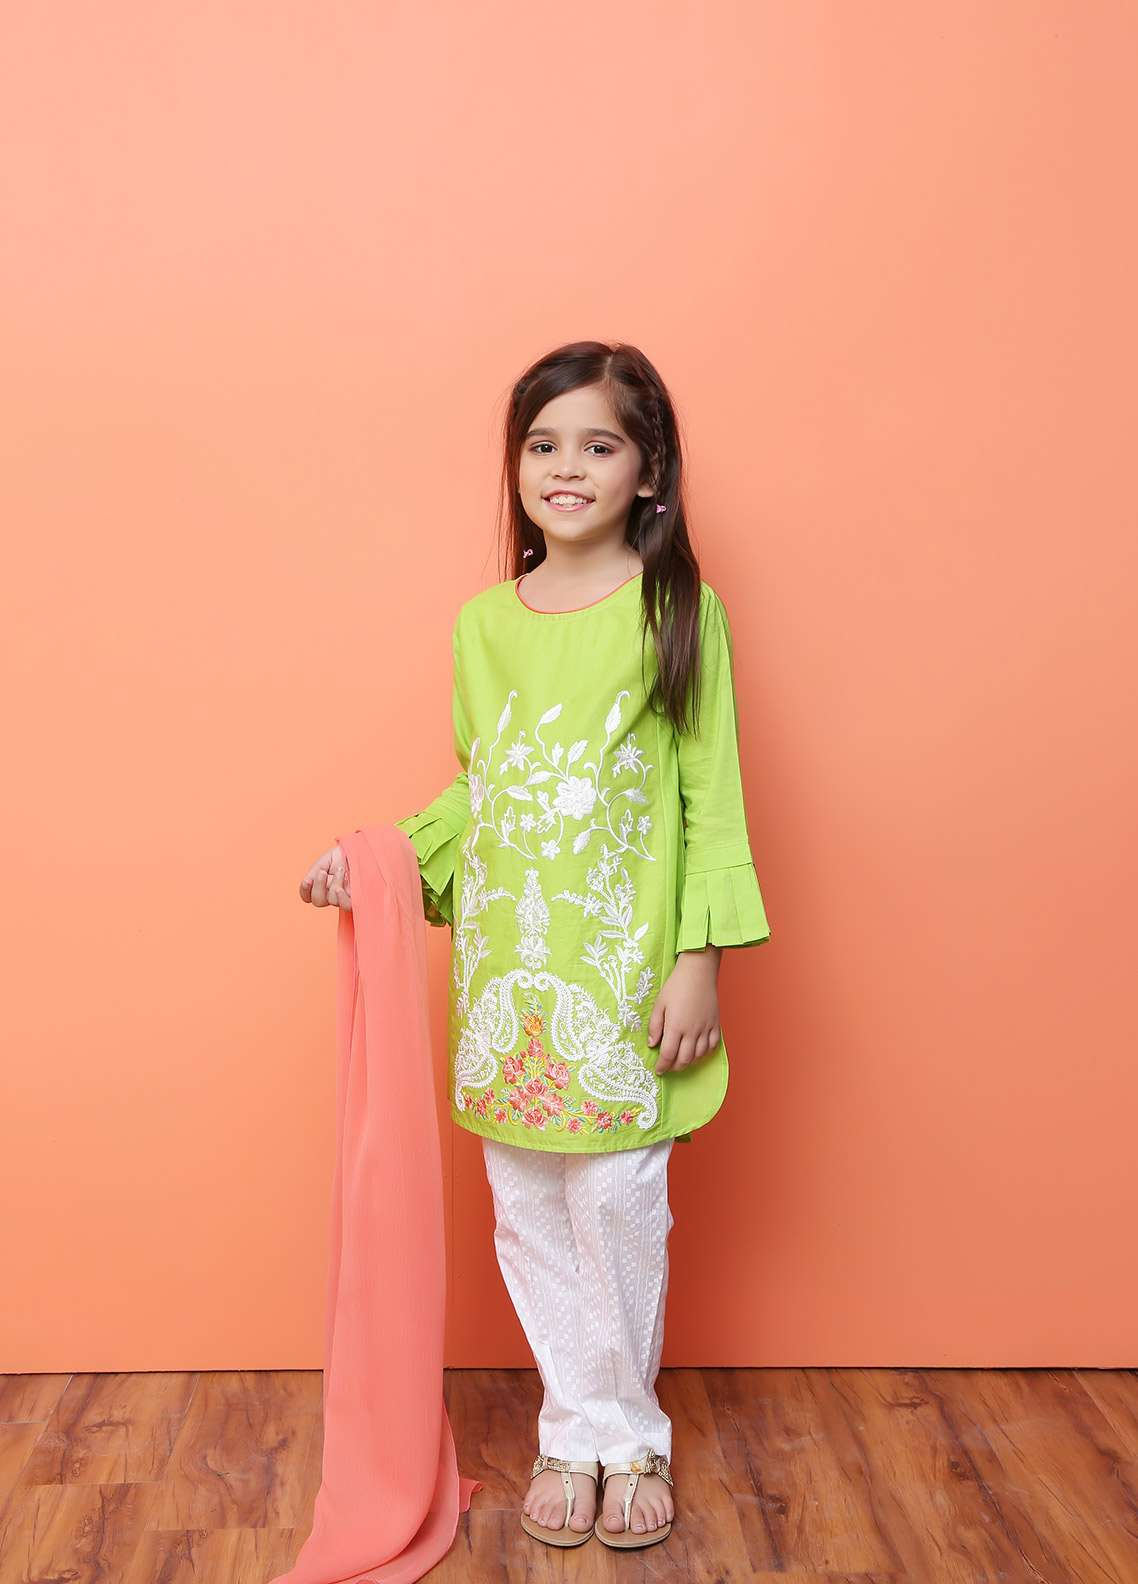 Ochre Cotton Formal 3 Piece Suit for Girls -  OFK 618 Lime Green